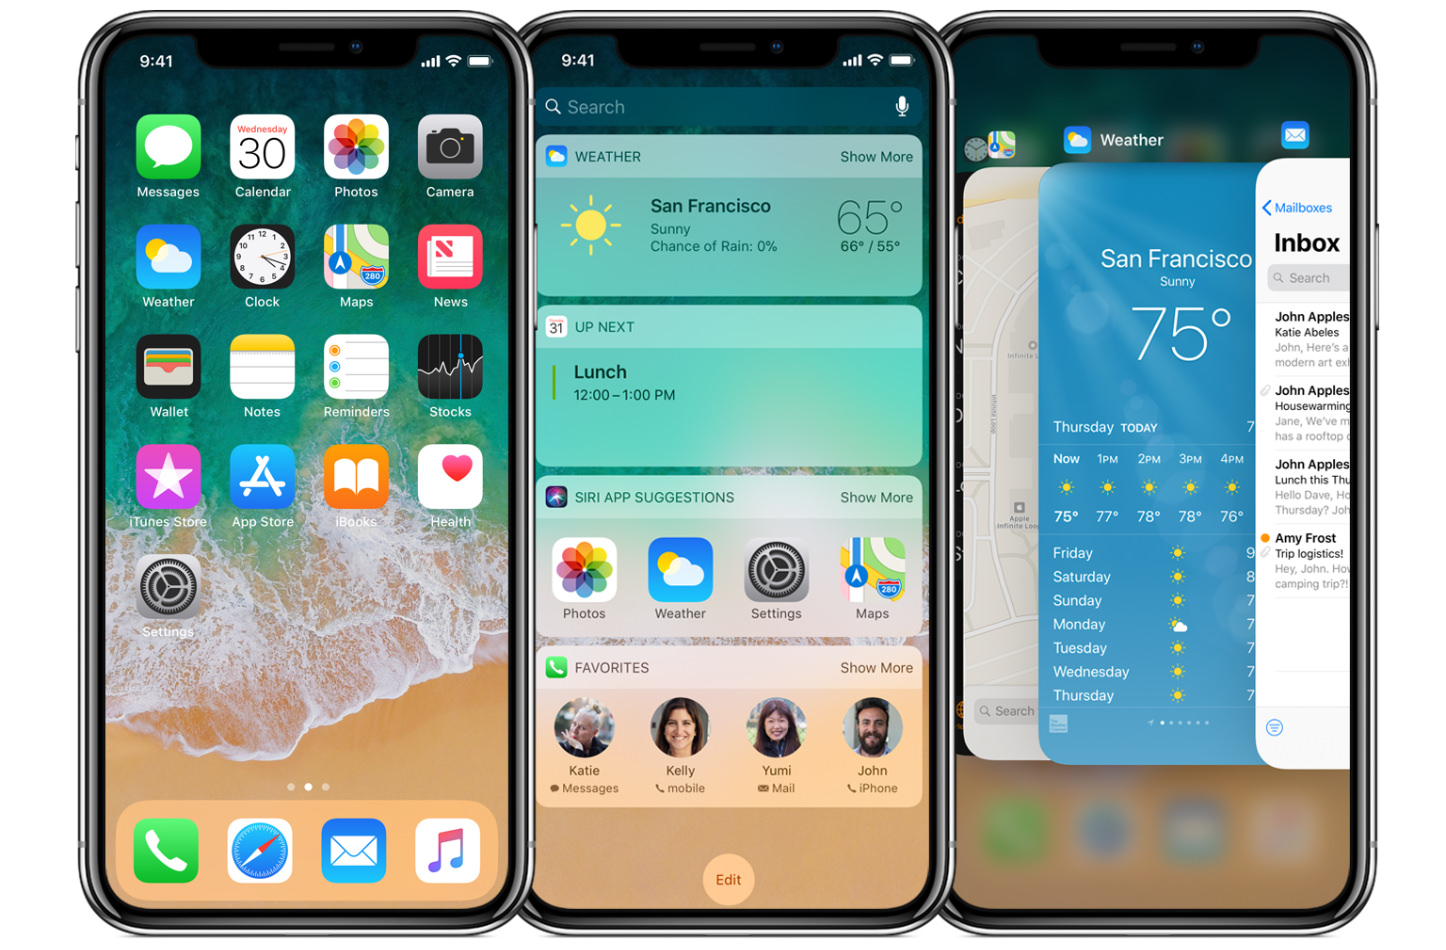 Iphonex human interface guidelines